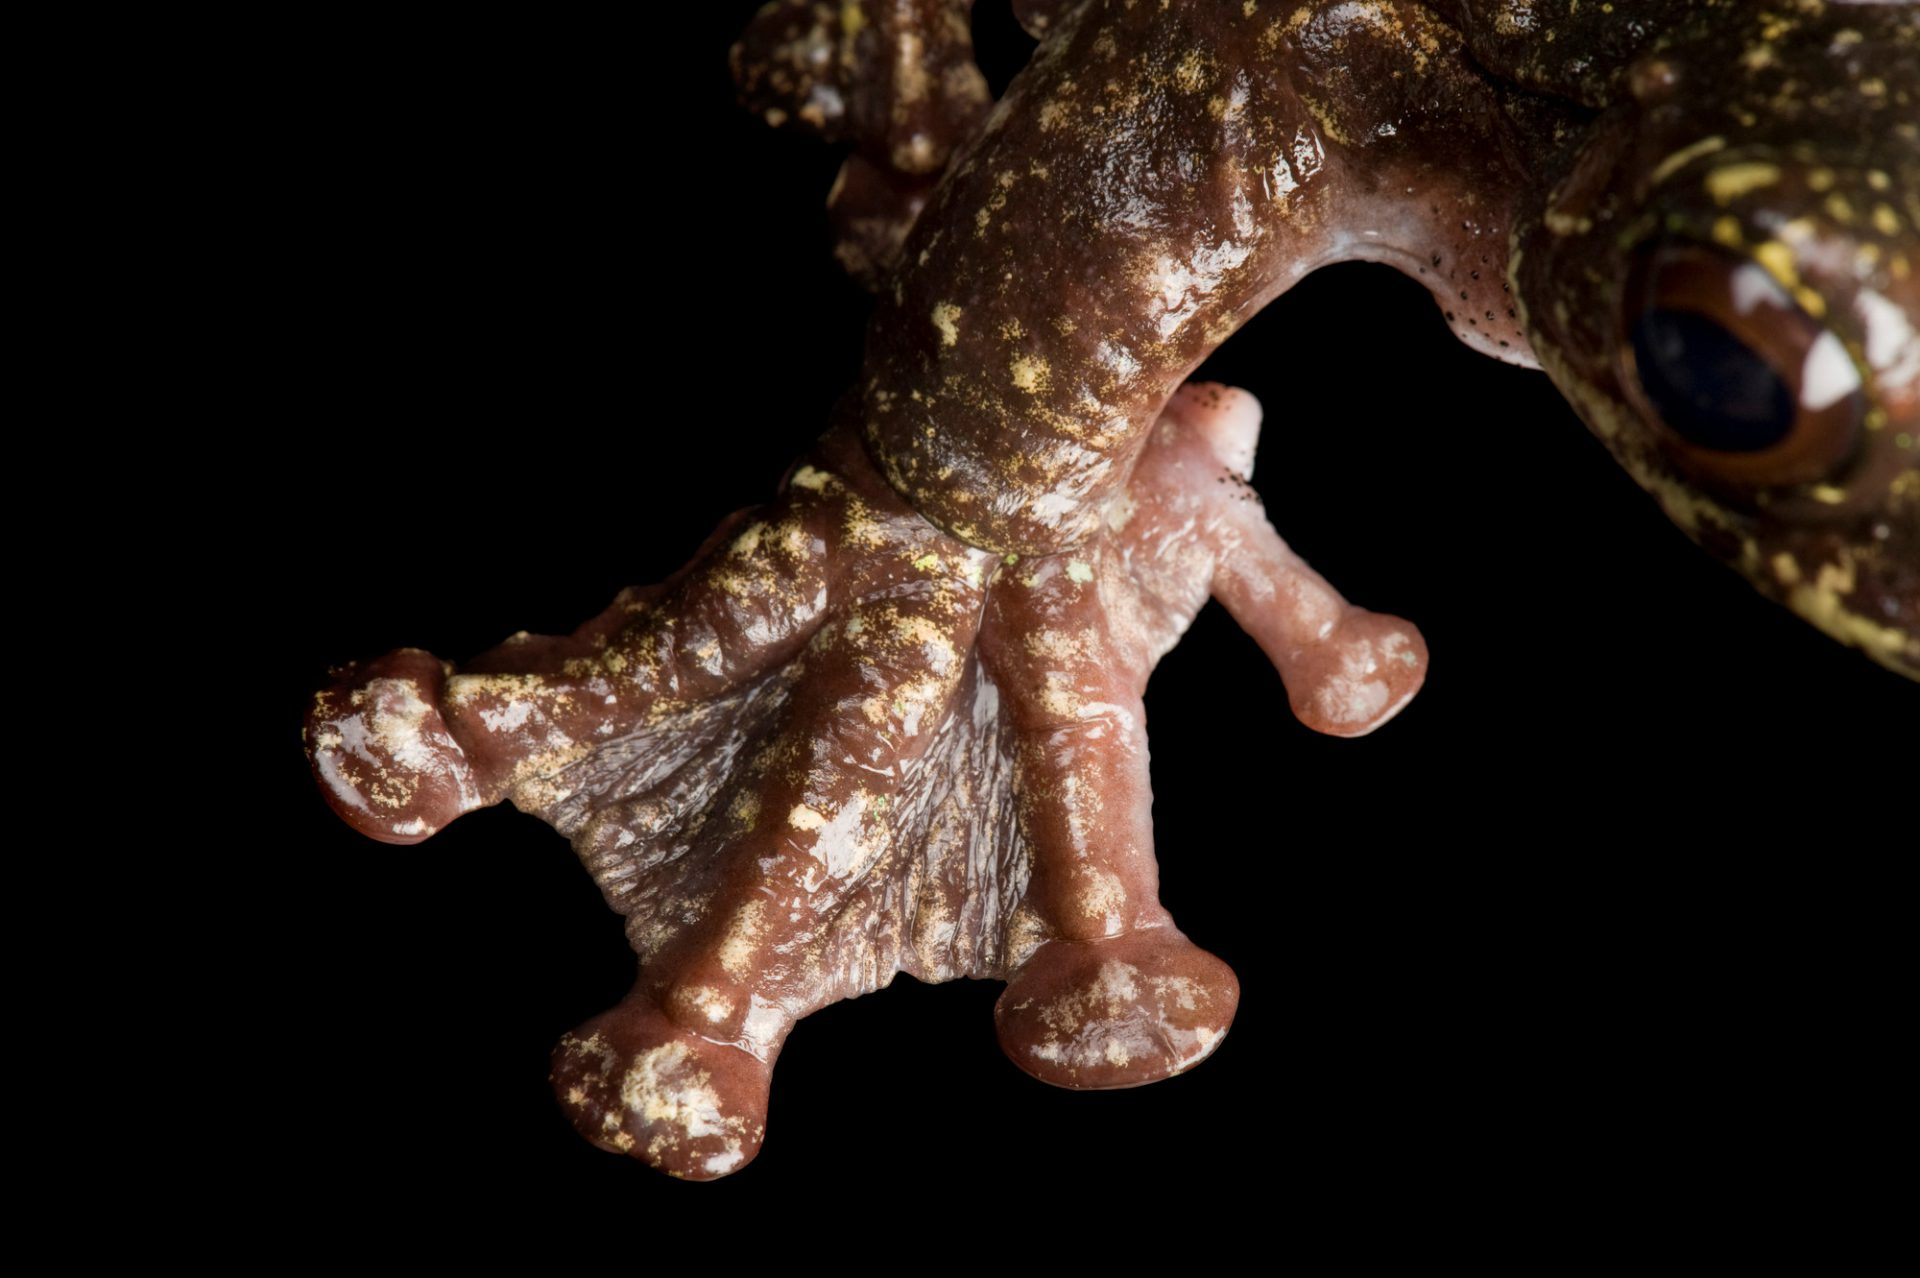 Picture of a Rabbs' fringe-limbed tree frog (Ecnomiohyla rabborum), a critically endangered freshwater species from Panama.